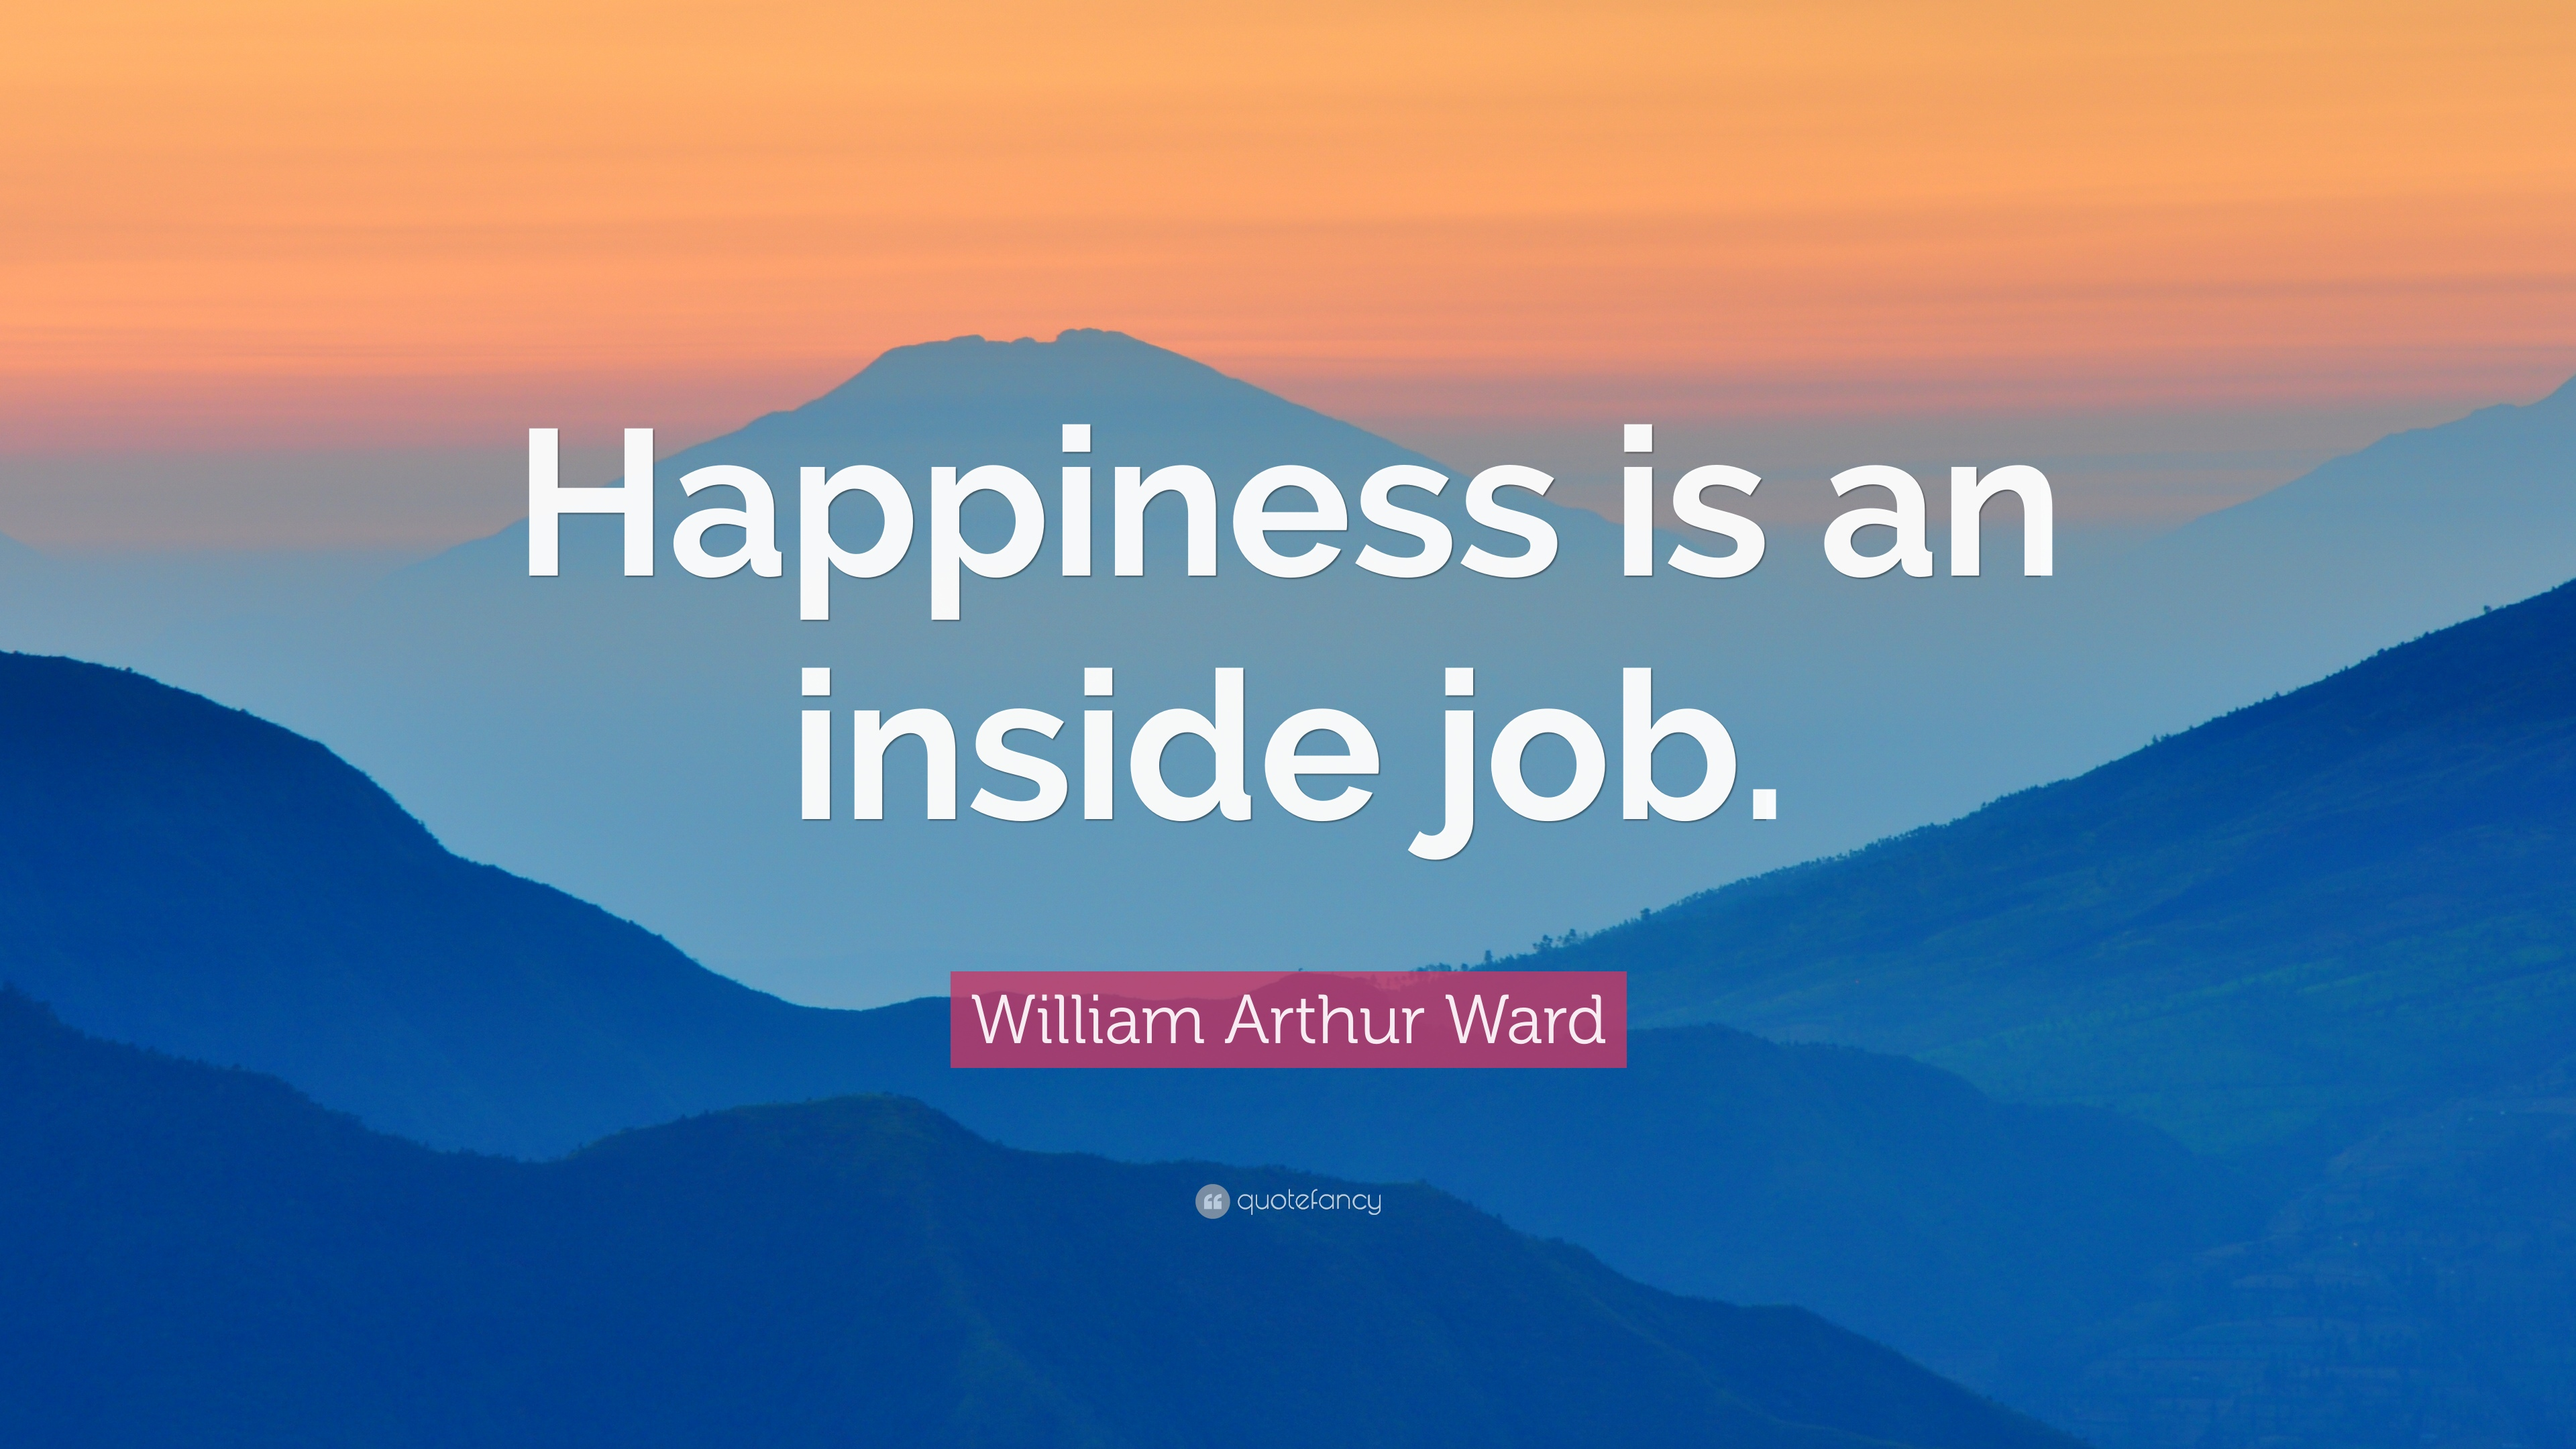 William Arthur Ward Quote: U201cHappiness Is An Inside Job.u201d